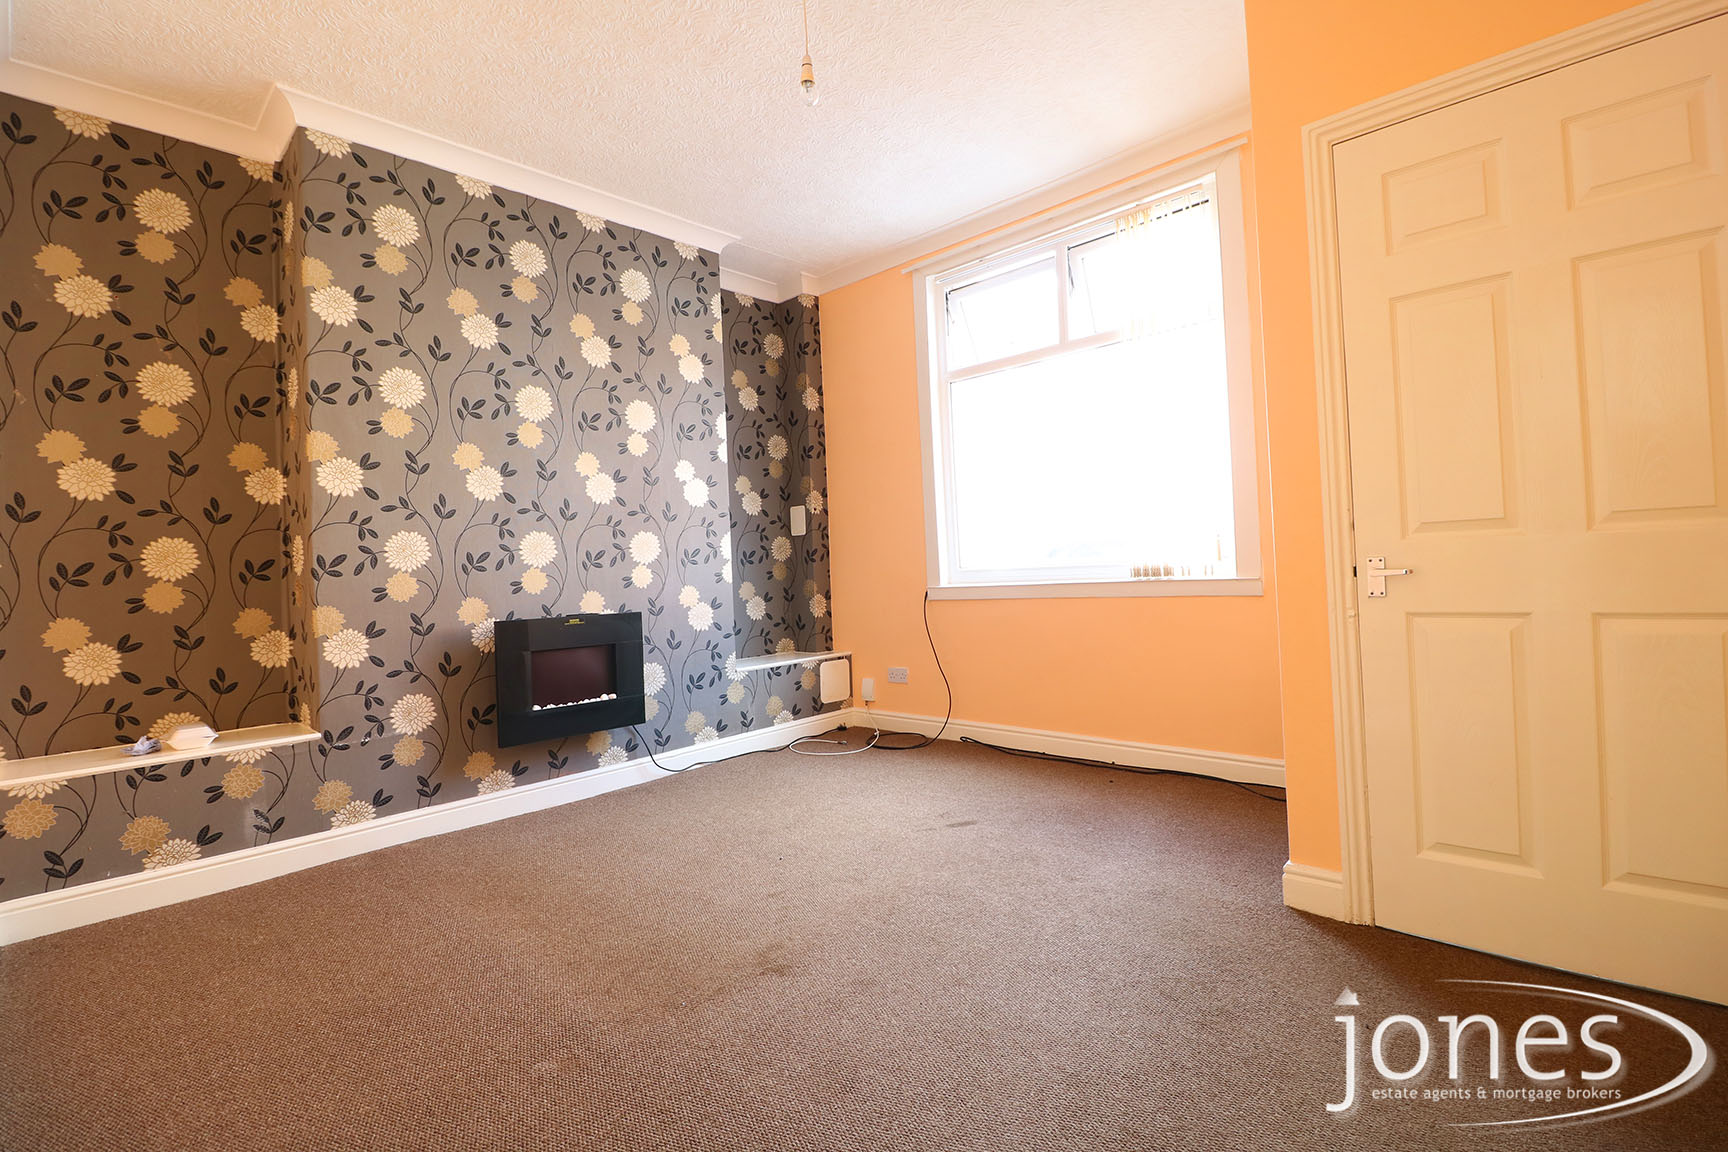 Home for Sale Let - Photo 02 Rosebery Street, Darlington, DL3 6EU